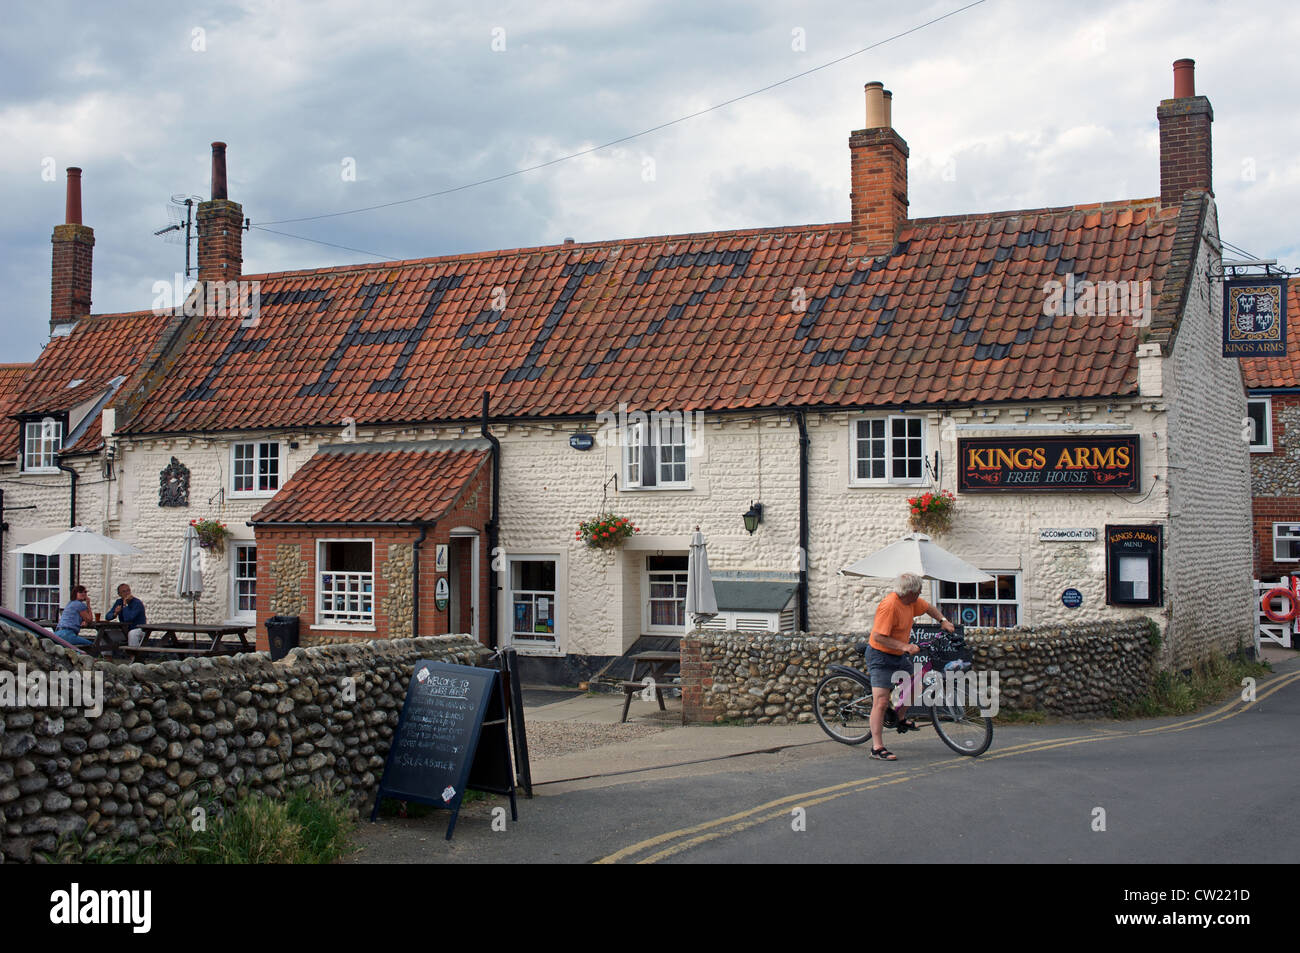 Kings Head public house, Blakeney, Norfolk, UK. - Stock Image